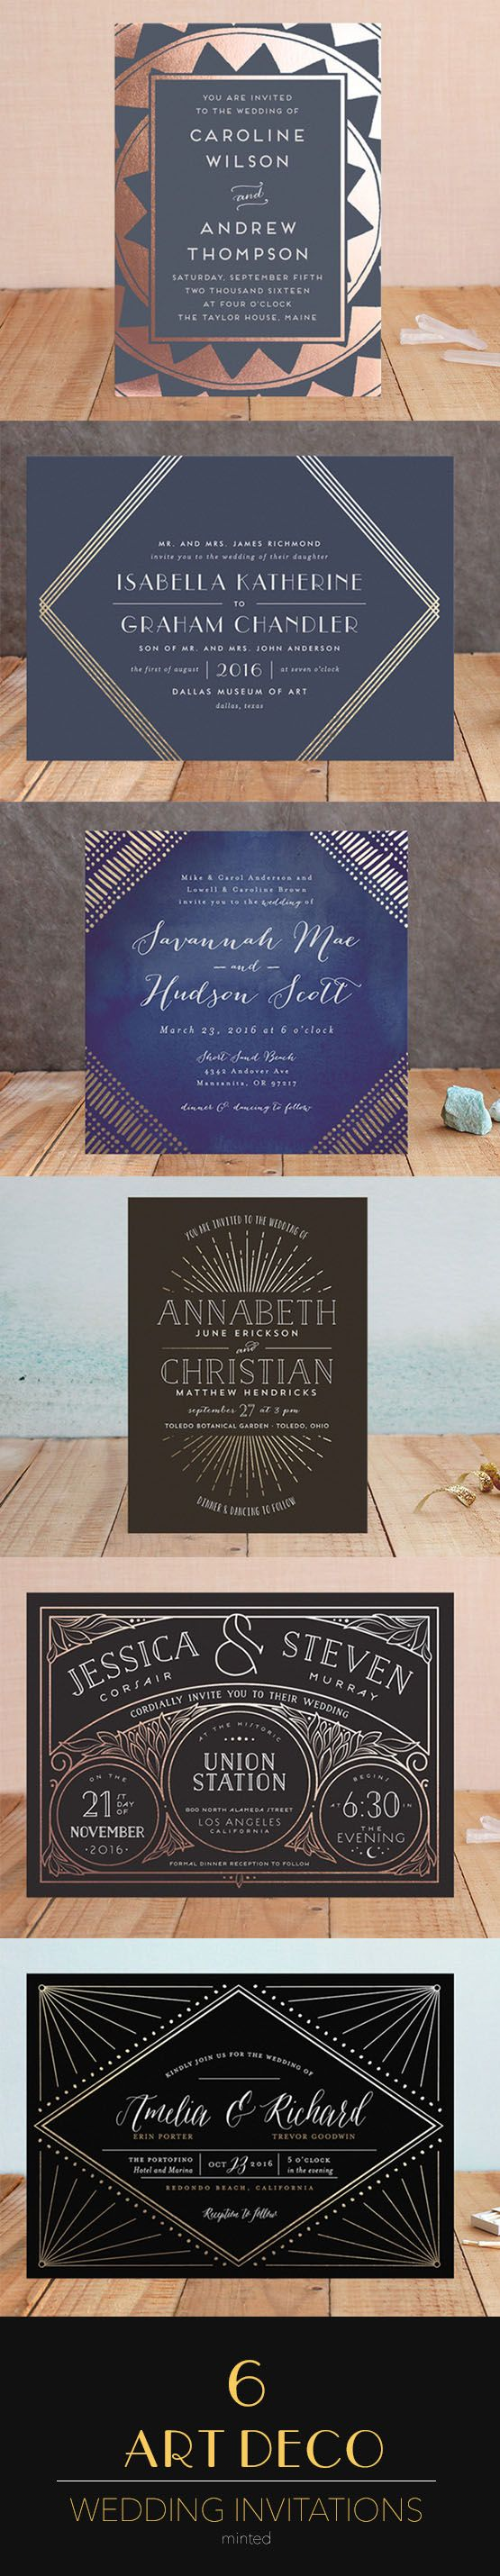 Black, Navy and Gold Wedding Invitations from Minted with a gorgeous art nouveau / art deco twist.